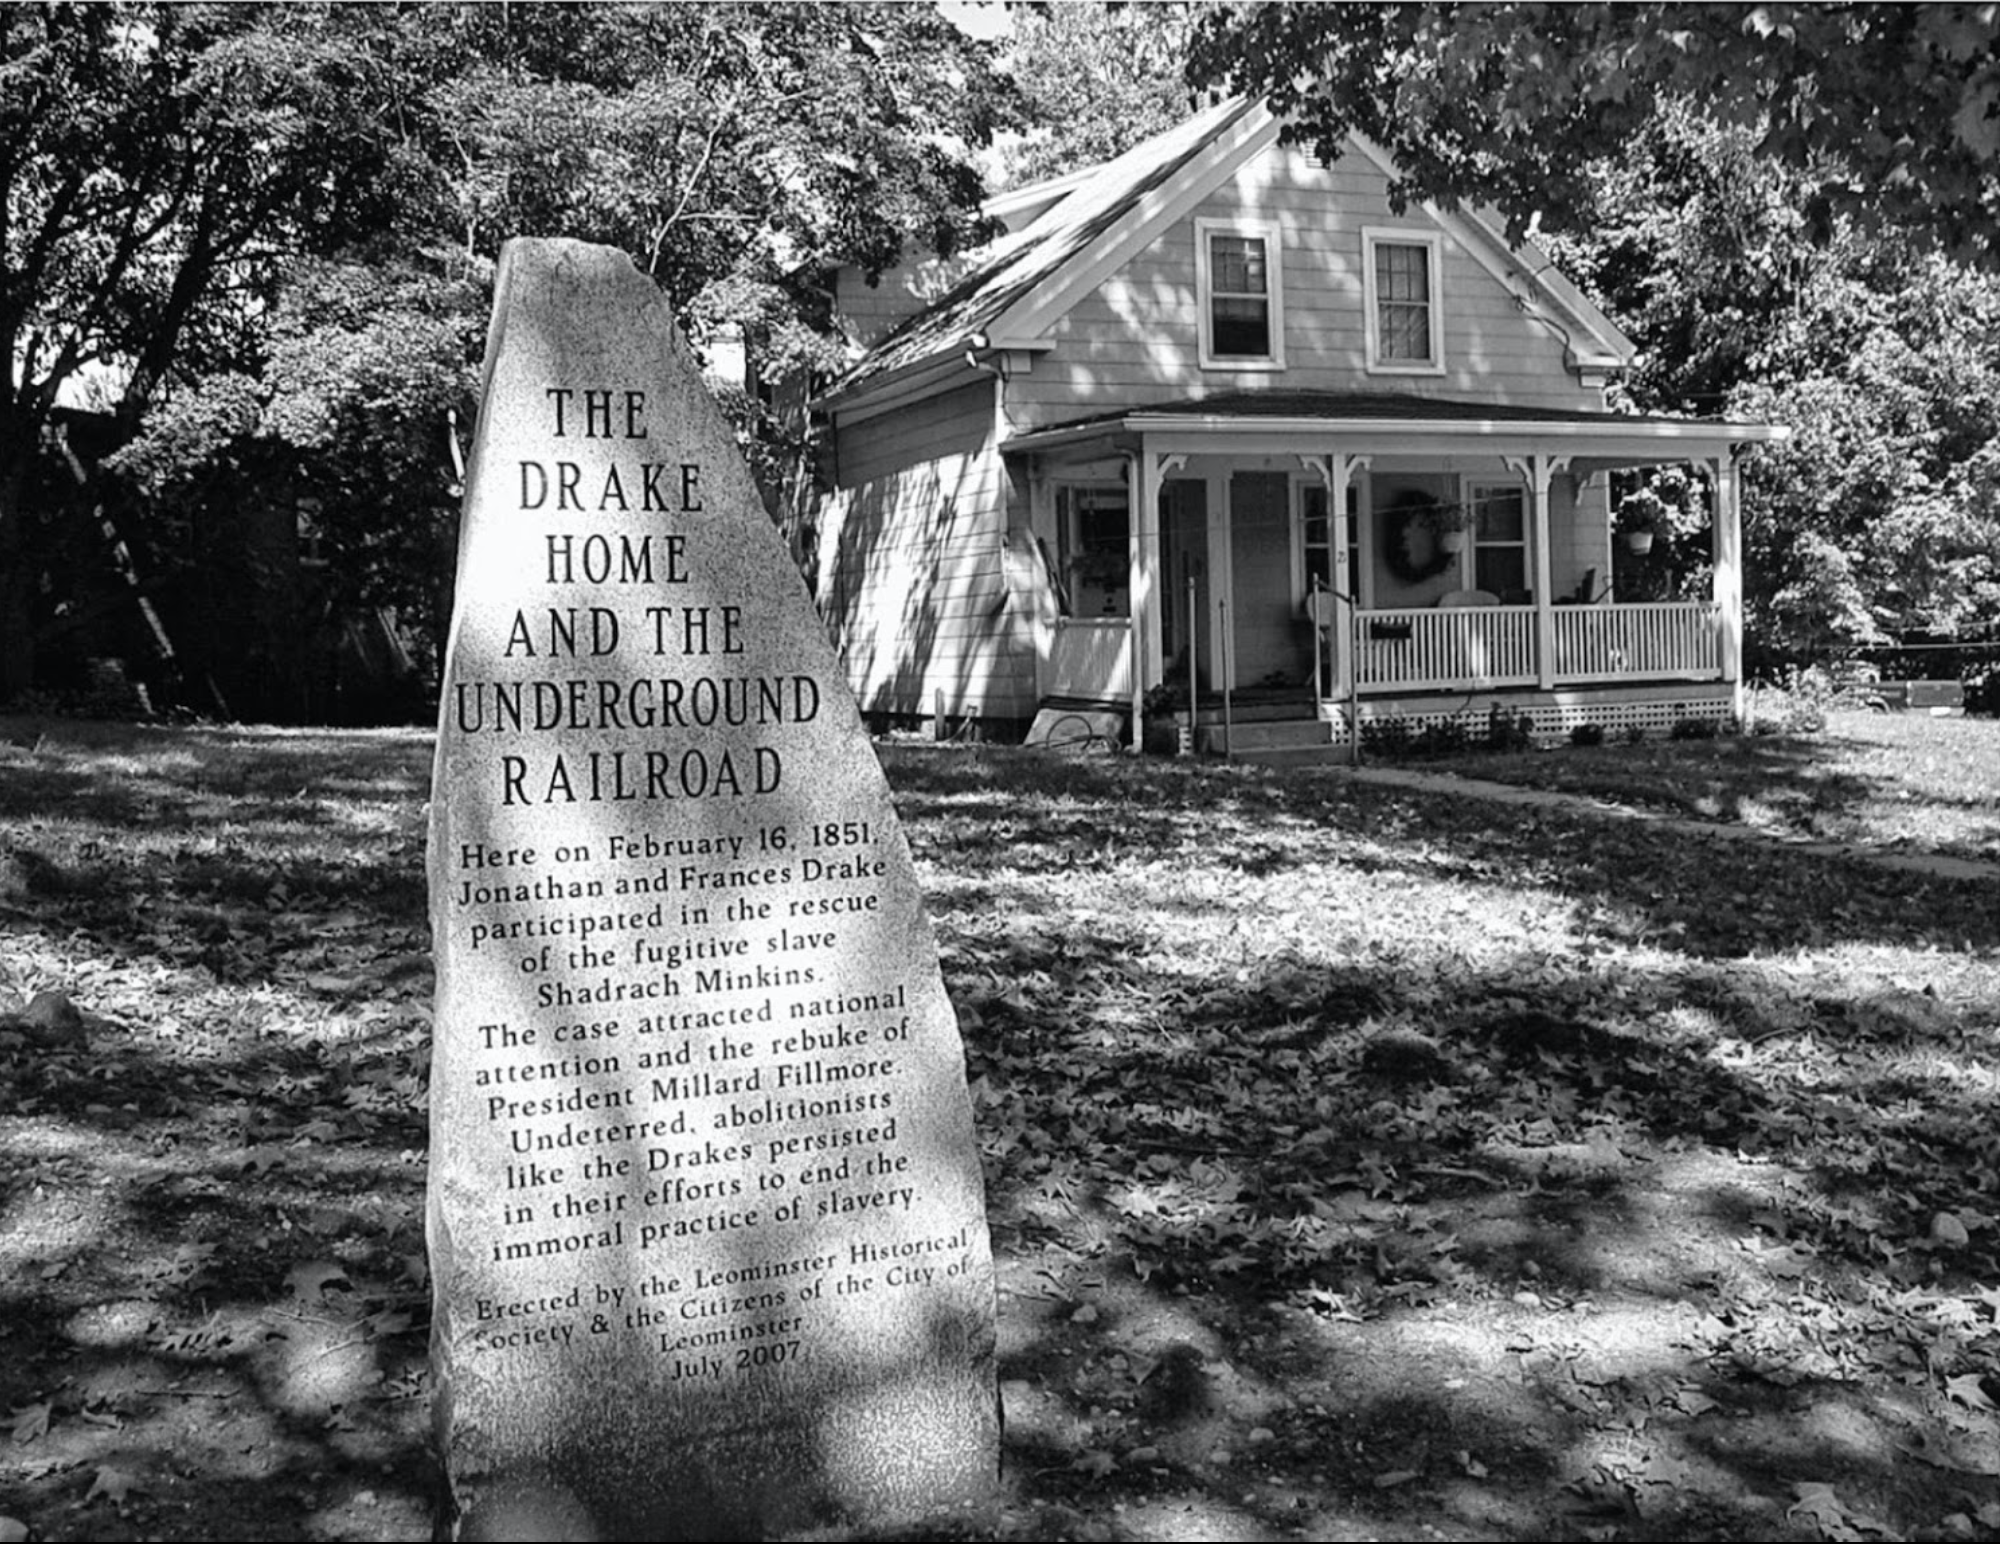 Photograph of the Drake House in Leominster, MA.